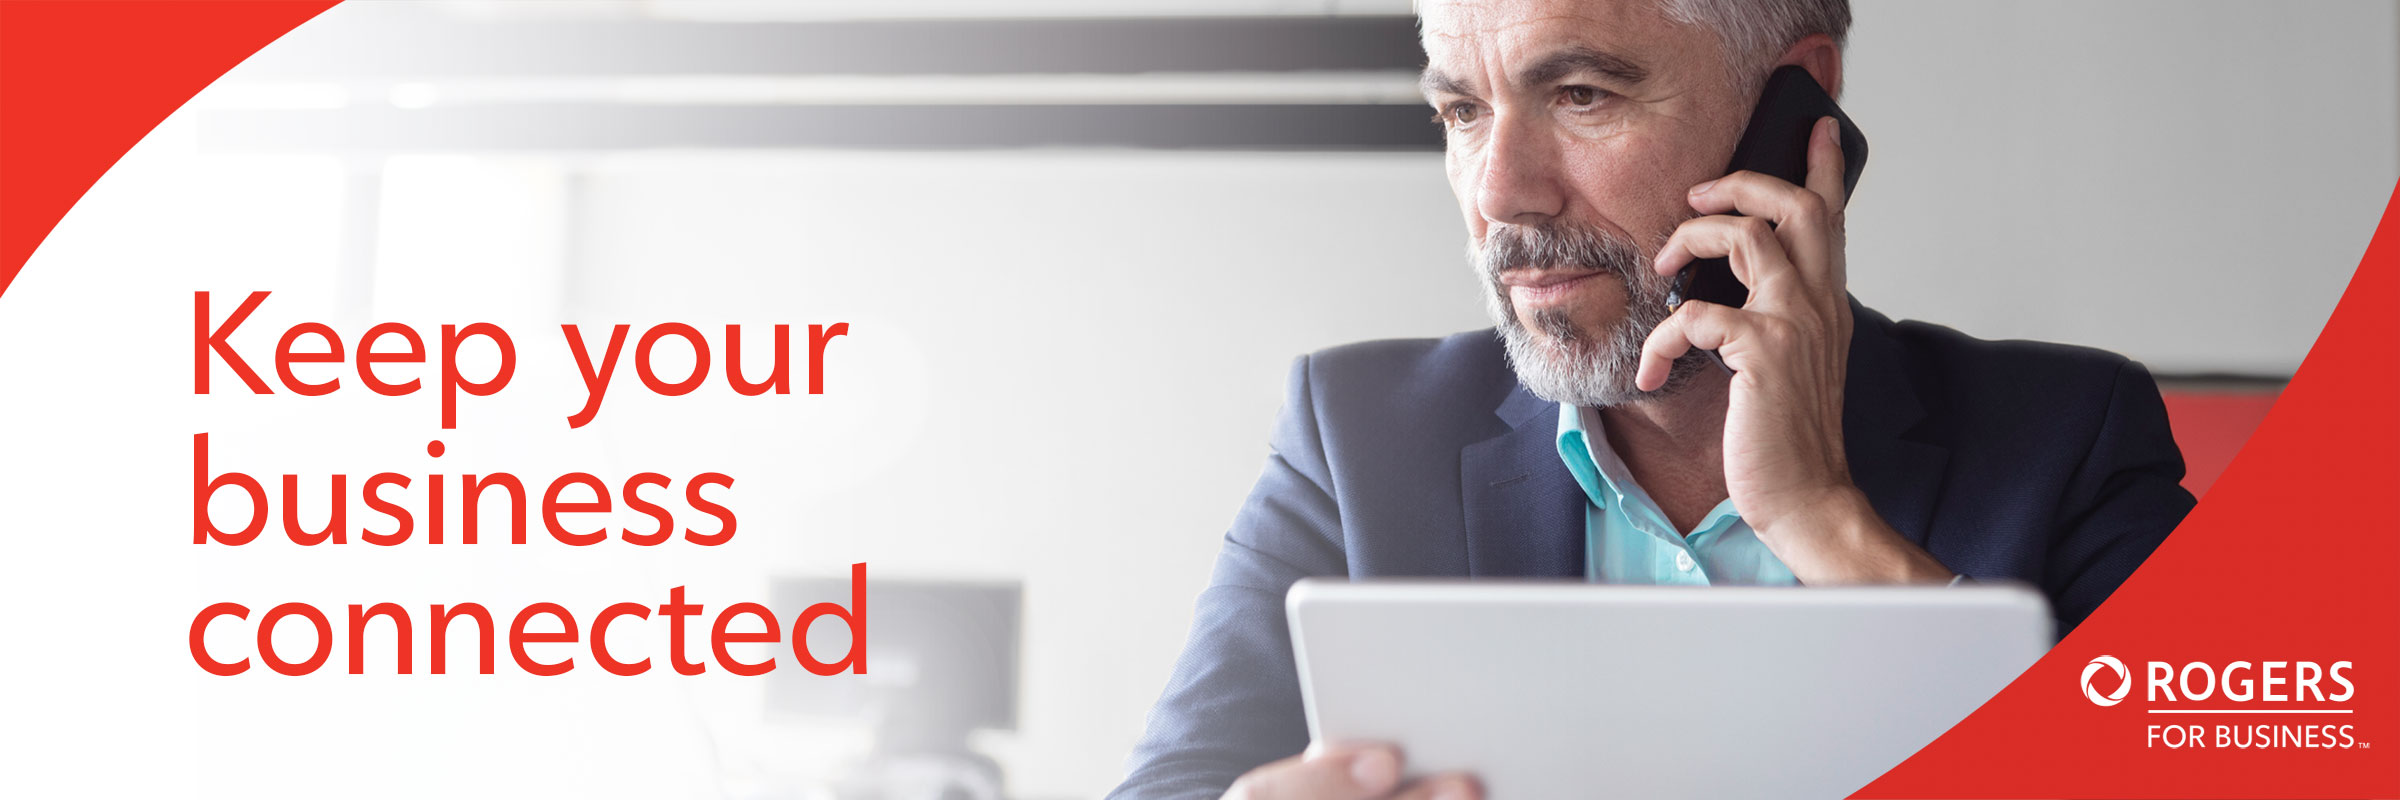 Keep your business connected | Rogers for Business